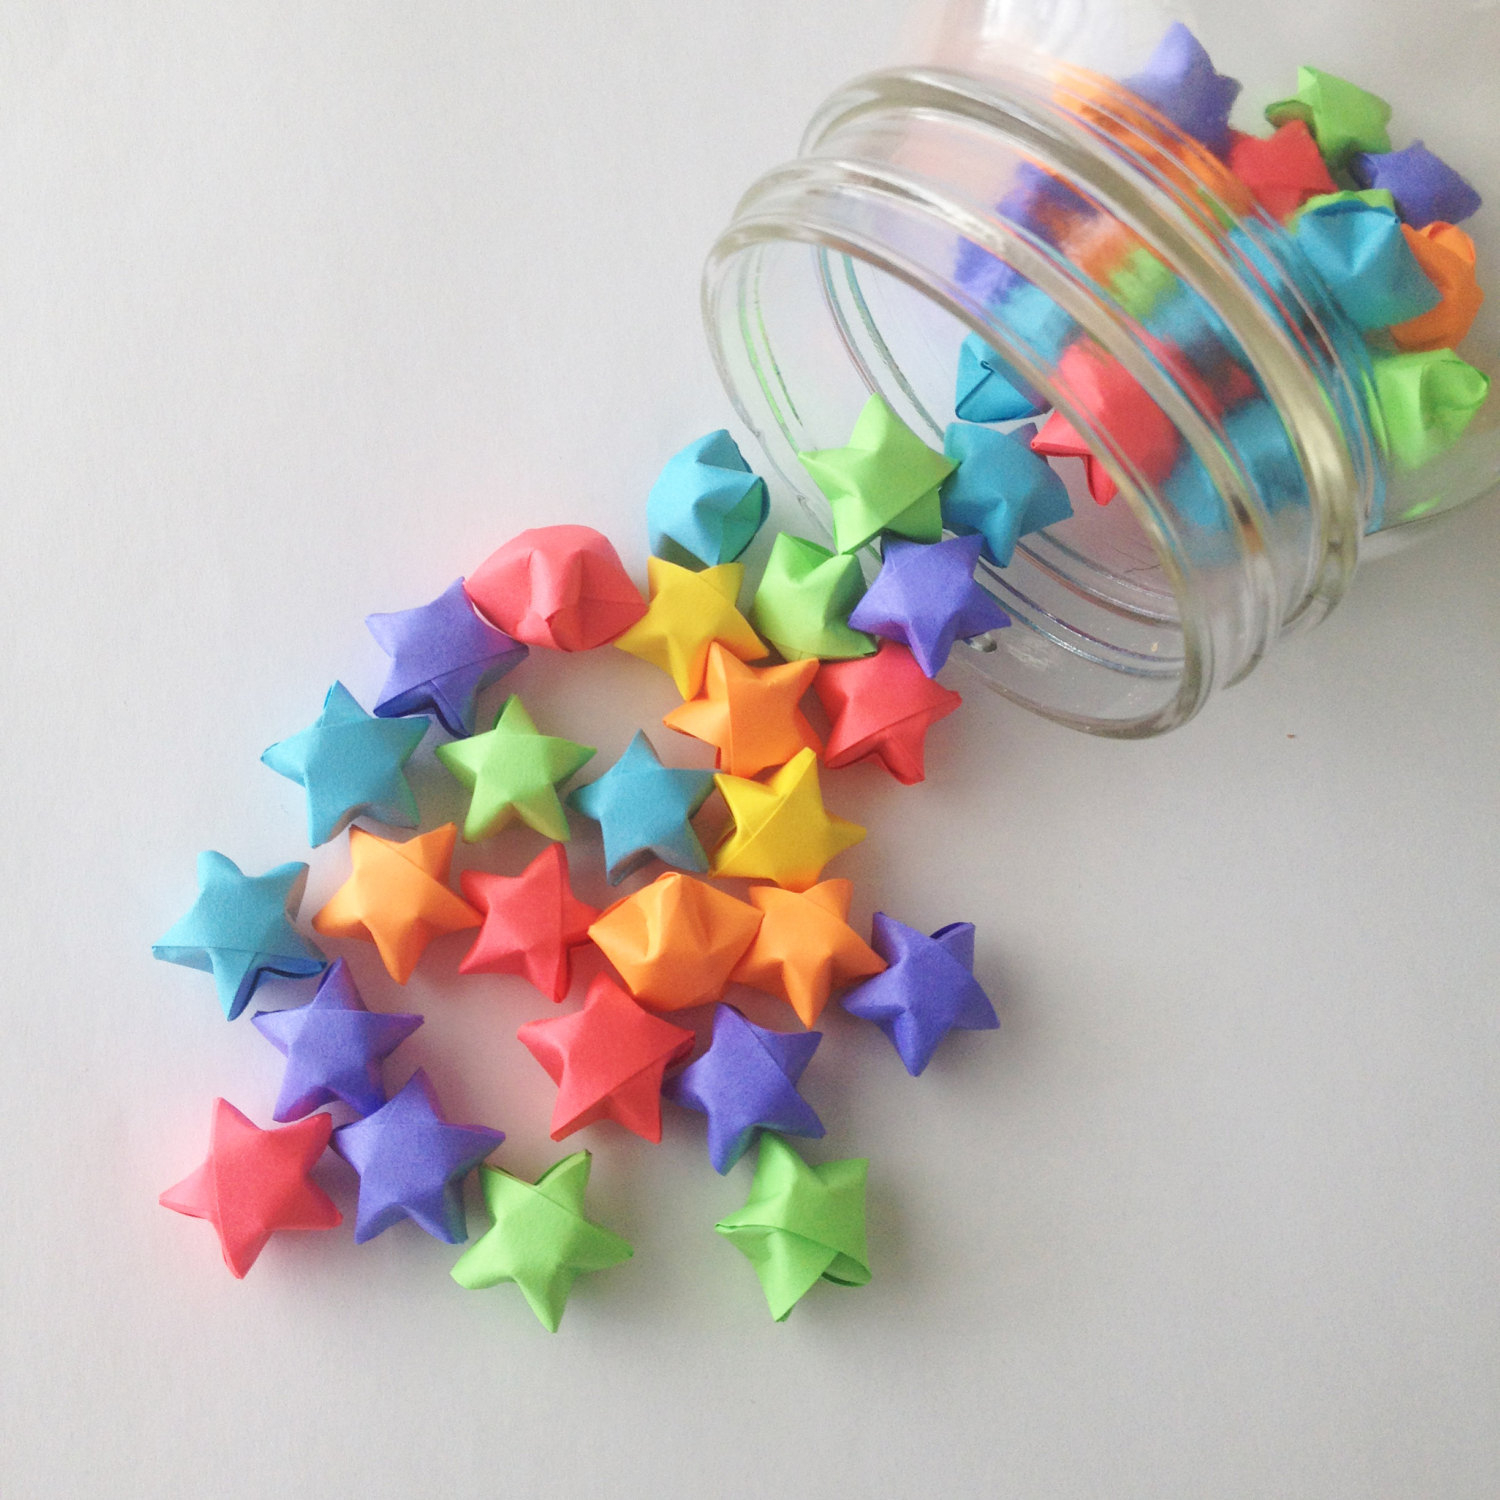 Origami Star Decorations Neon Rainbow Origami Stars Red Orange Yellow Green Blue Purple Mini Star Decorations Folded Paper Lucky Stars Pride Lgbt